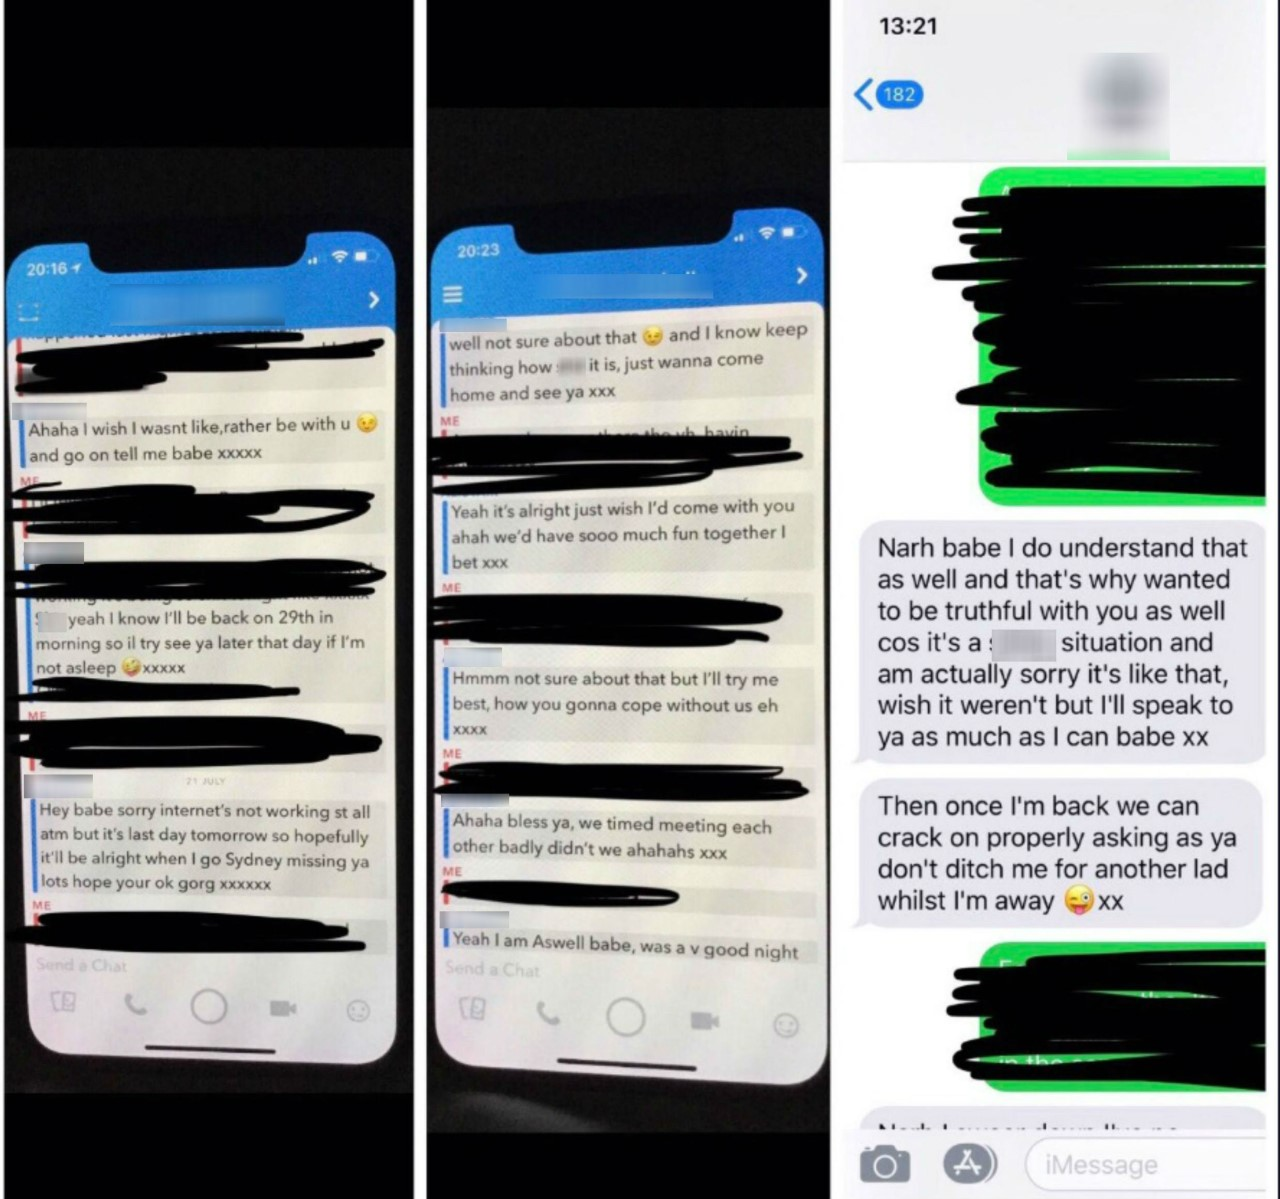 The messages were being sent while Emily was on holiday with her now ex-boyfriend. (Credit: Deadline News)